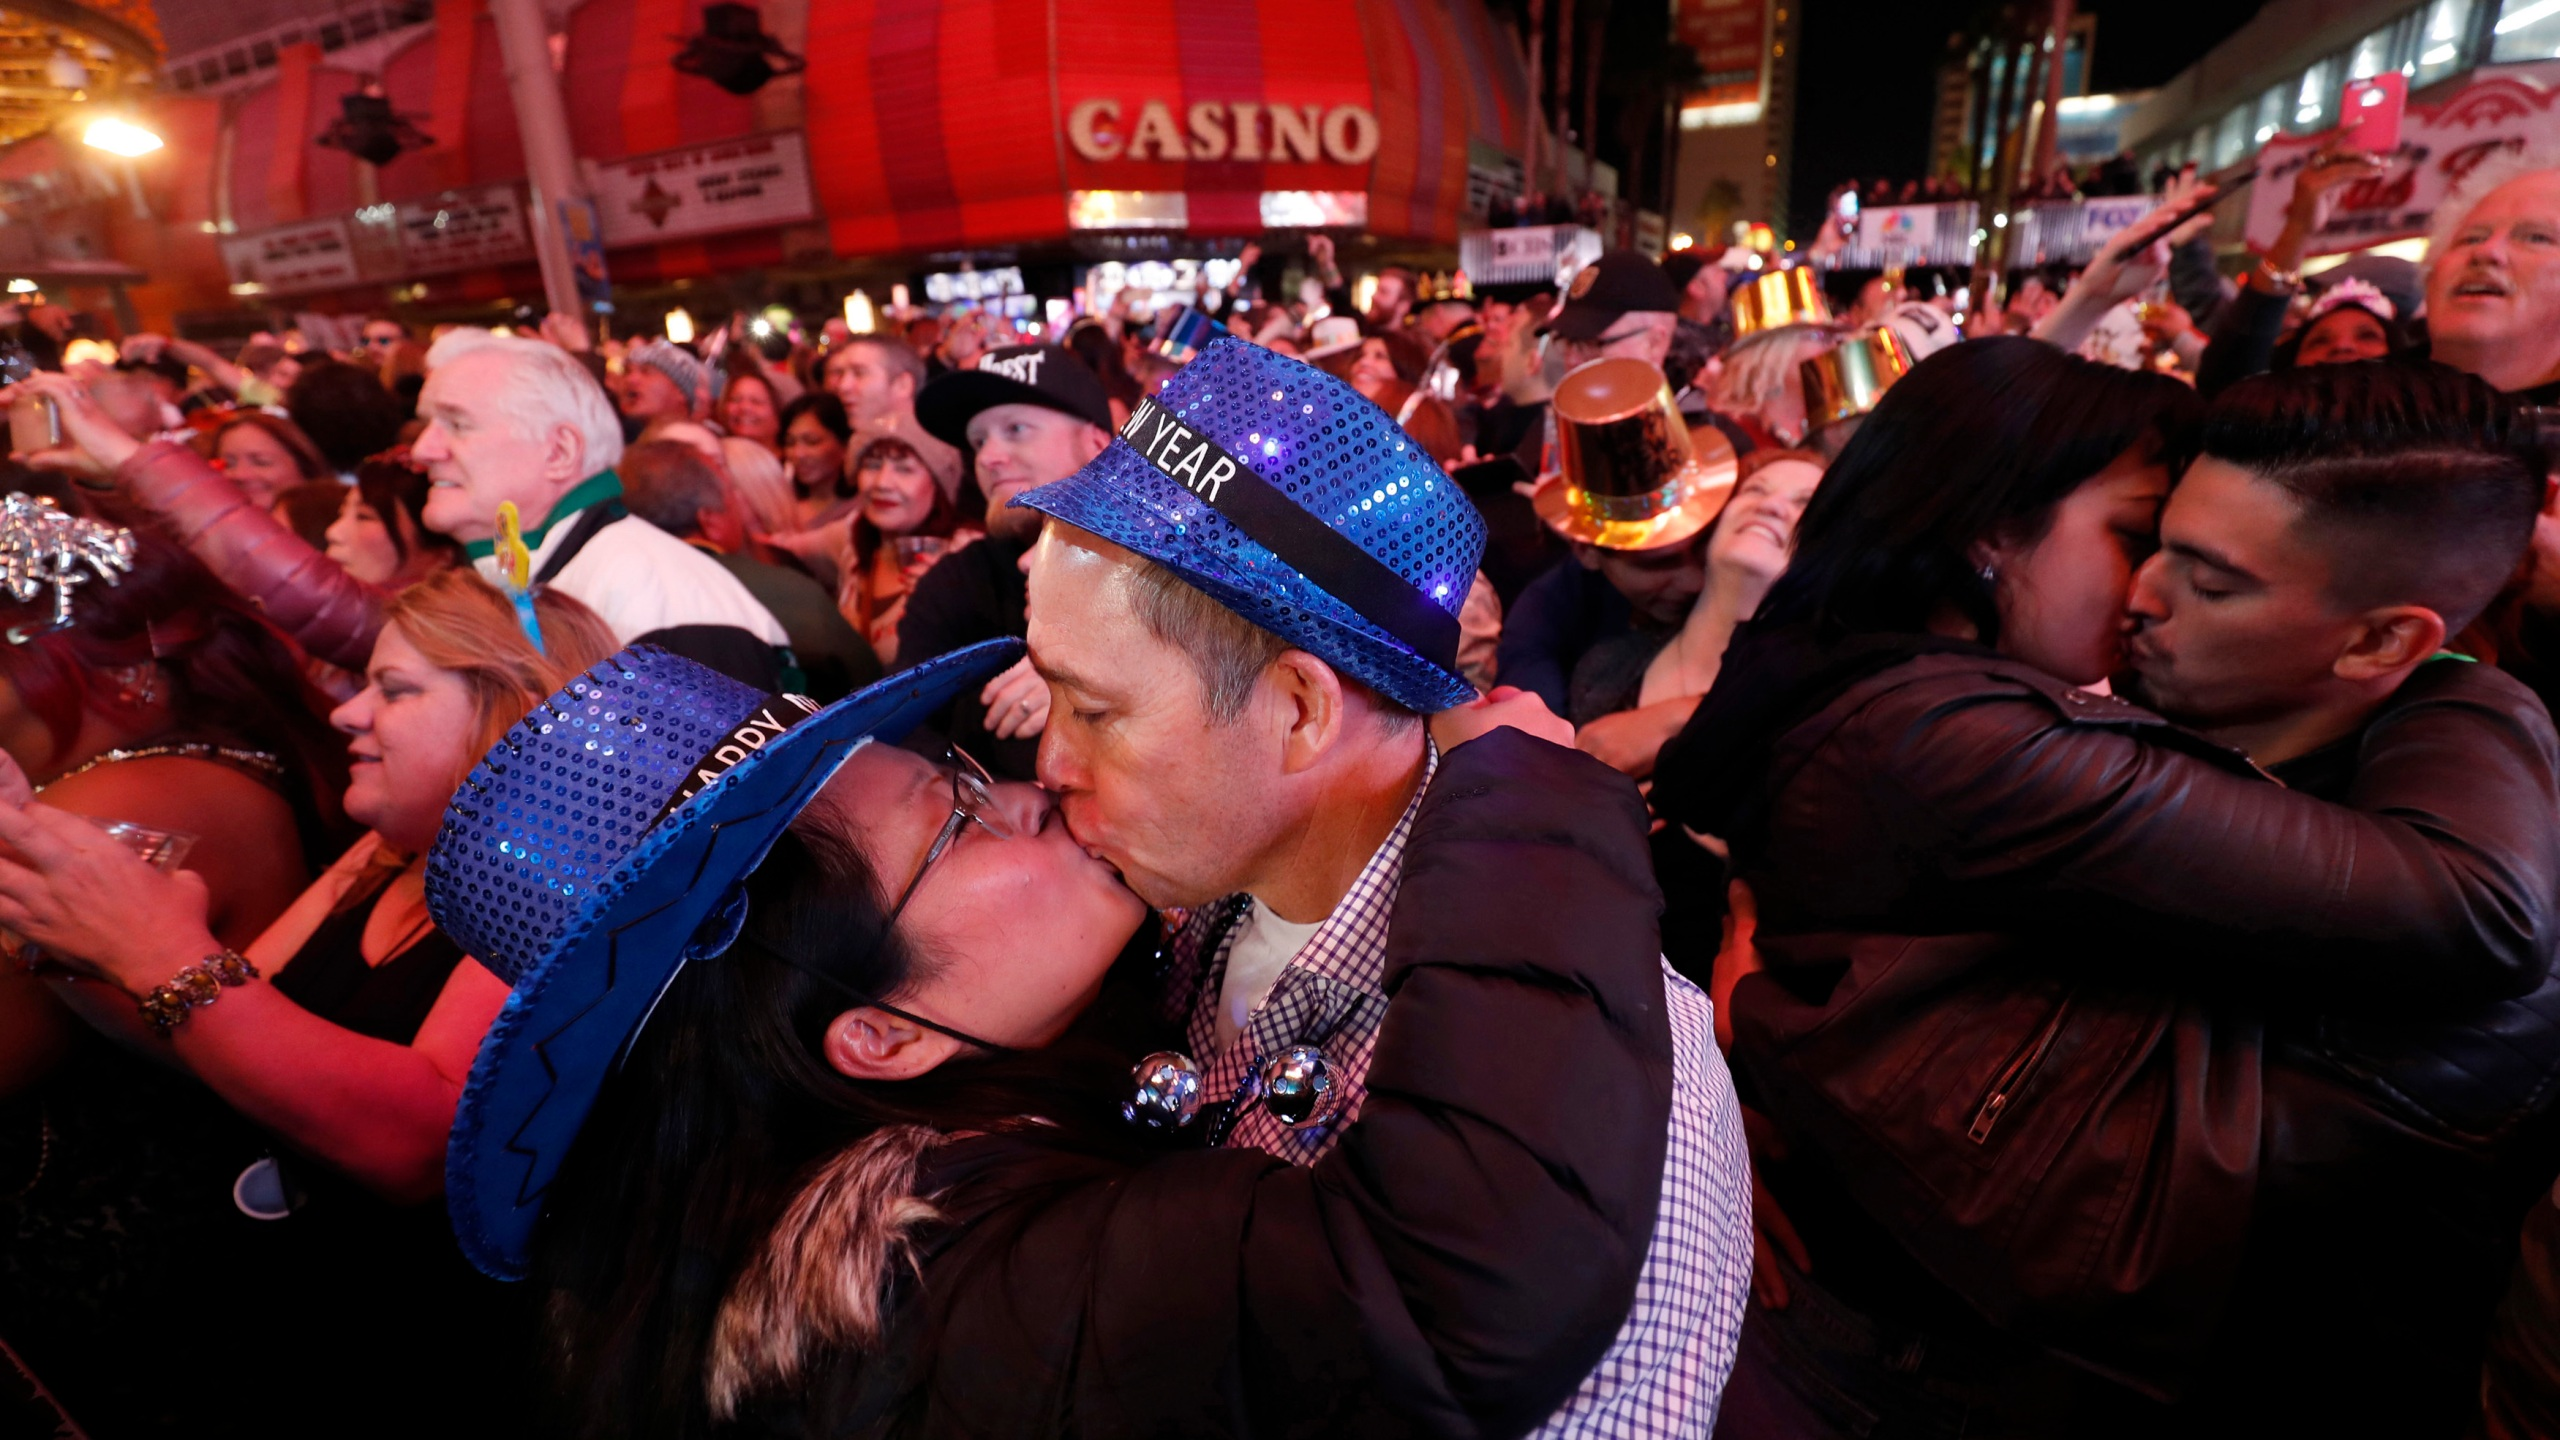 In this Jan. 1, 2018, file photo, newlyweds Alison and Kenny Finchum, lower left, of Tulsa, Okla., kiss just after midnight during a New Year's party at the Fremont Street Experience in downtown Las Vegas. (Steve Marcus/Las Vegas Sun via AP)